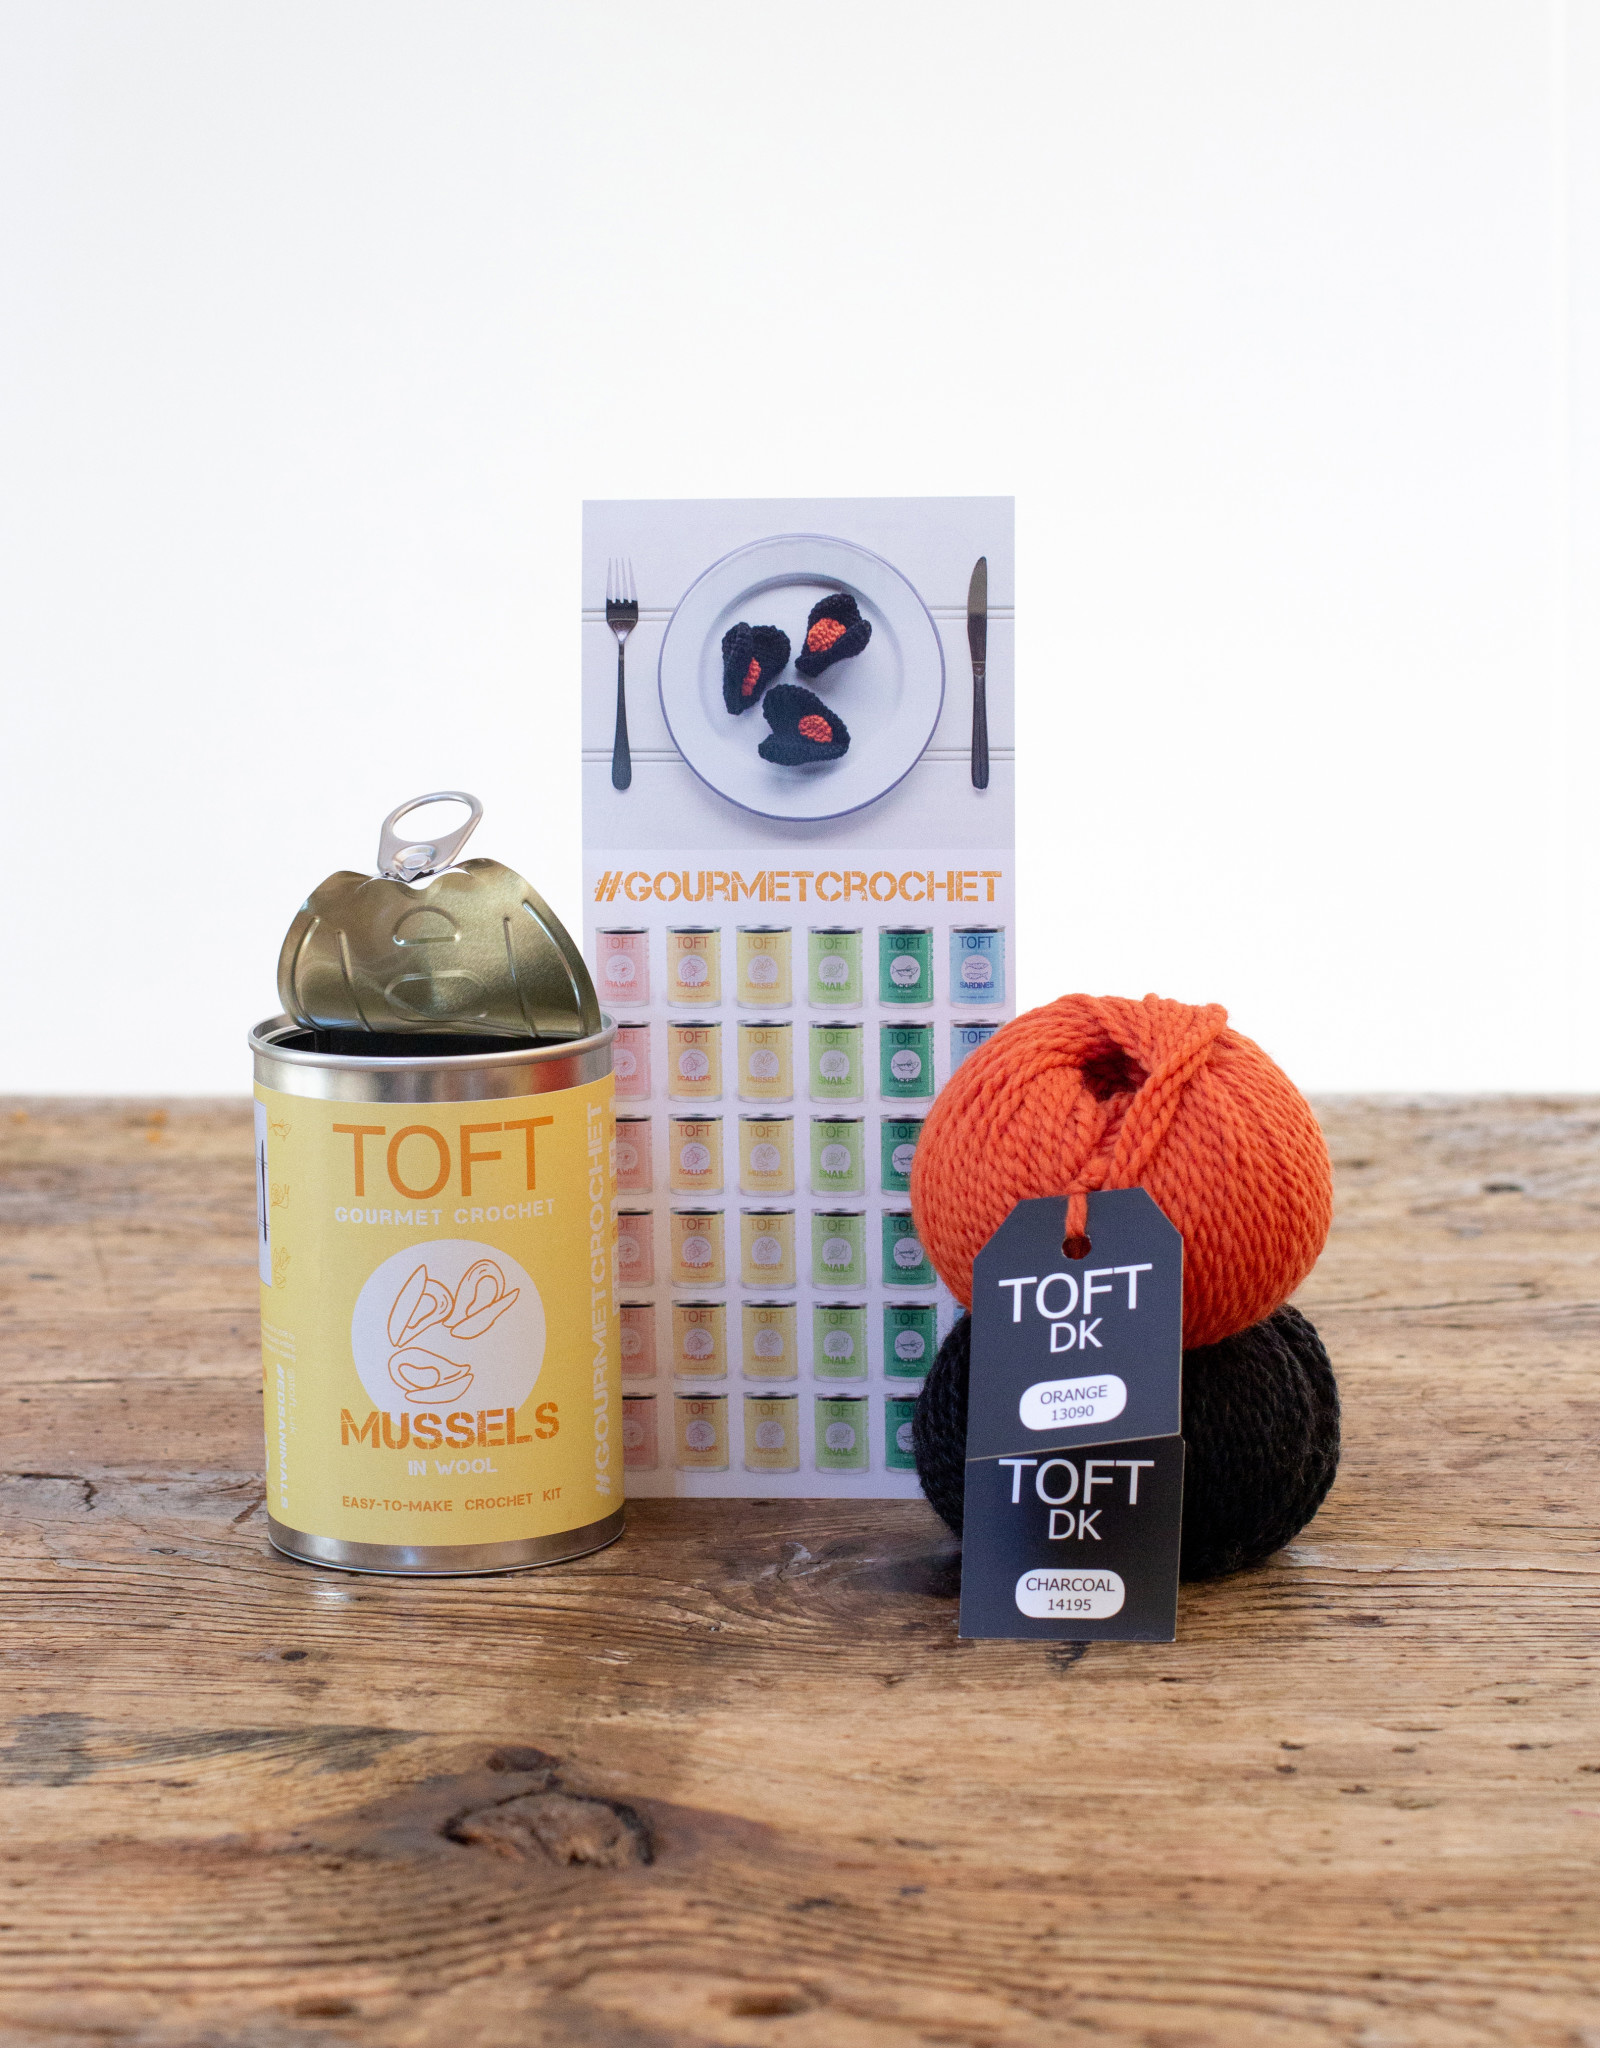 TOFT MUSSELS IN A TIN KIT - ENGLISH